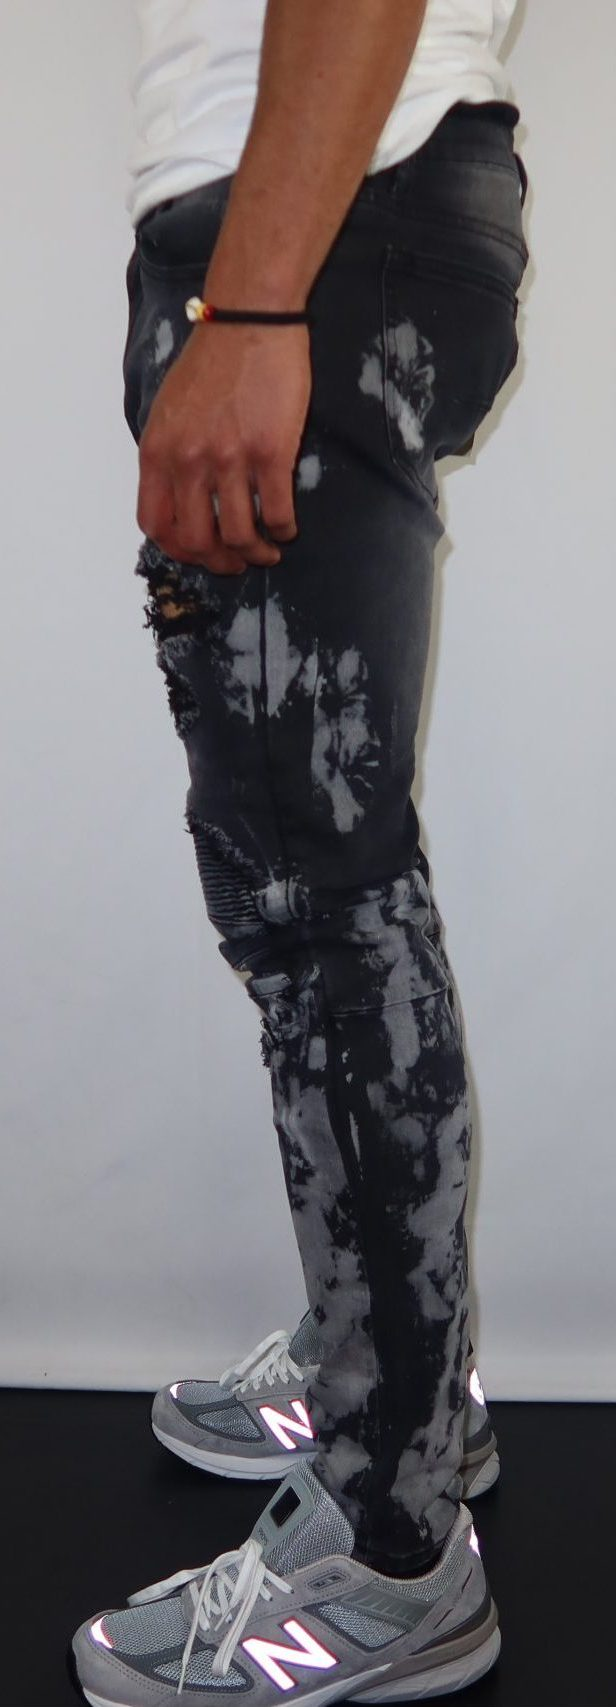 Bleach Spot patched Jeans